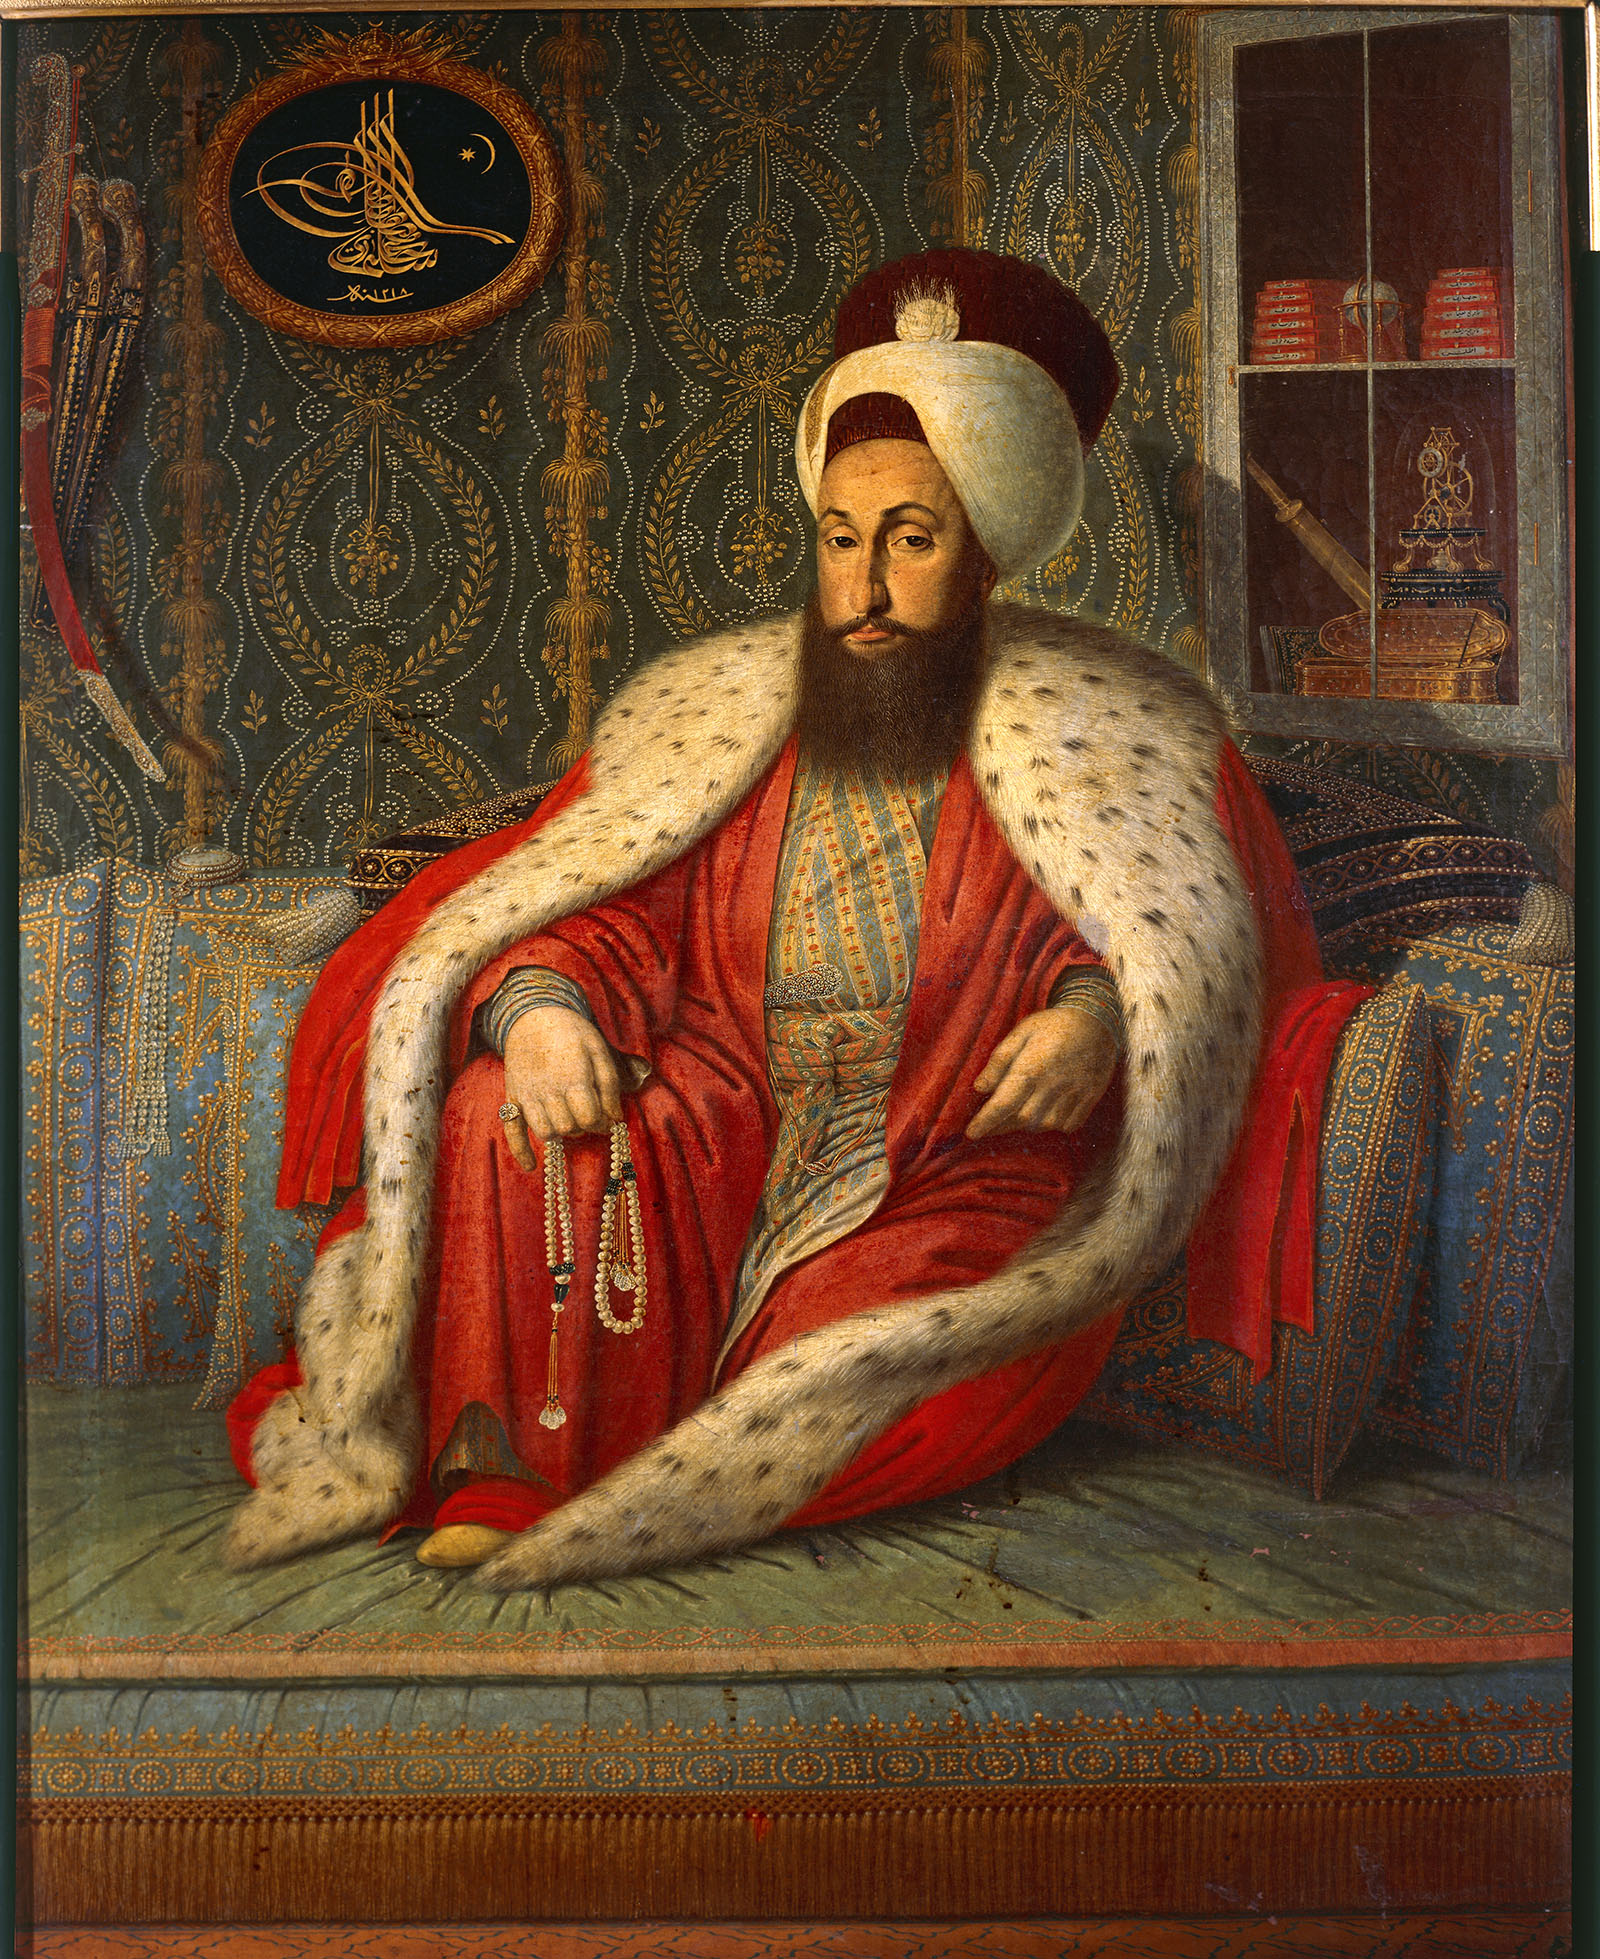 Portrait of the Sultan of the Ottoman Empire Selim III (1789–1807), Turkey, 18th century.